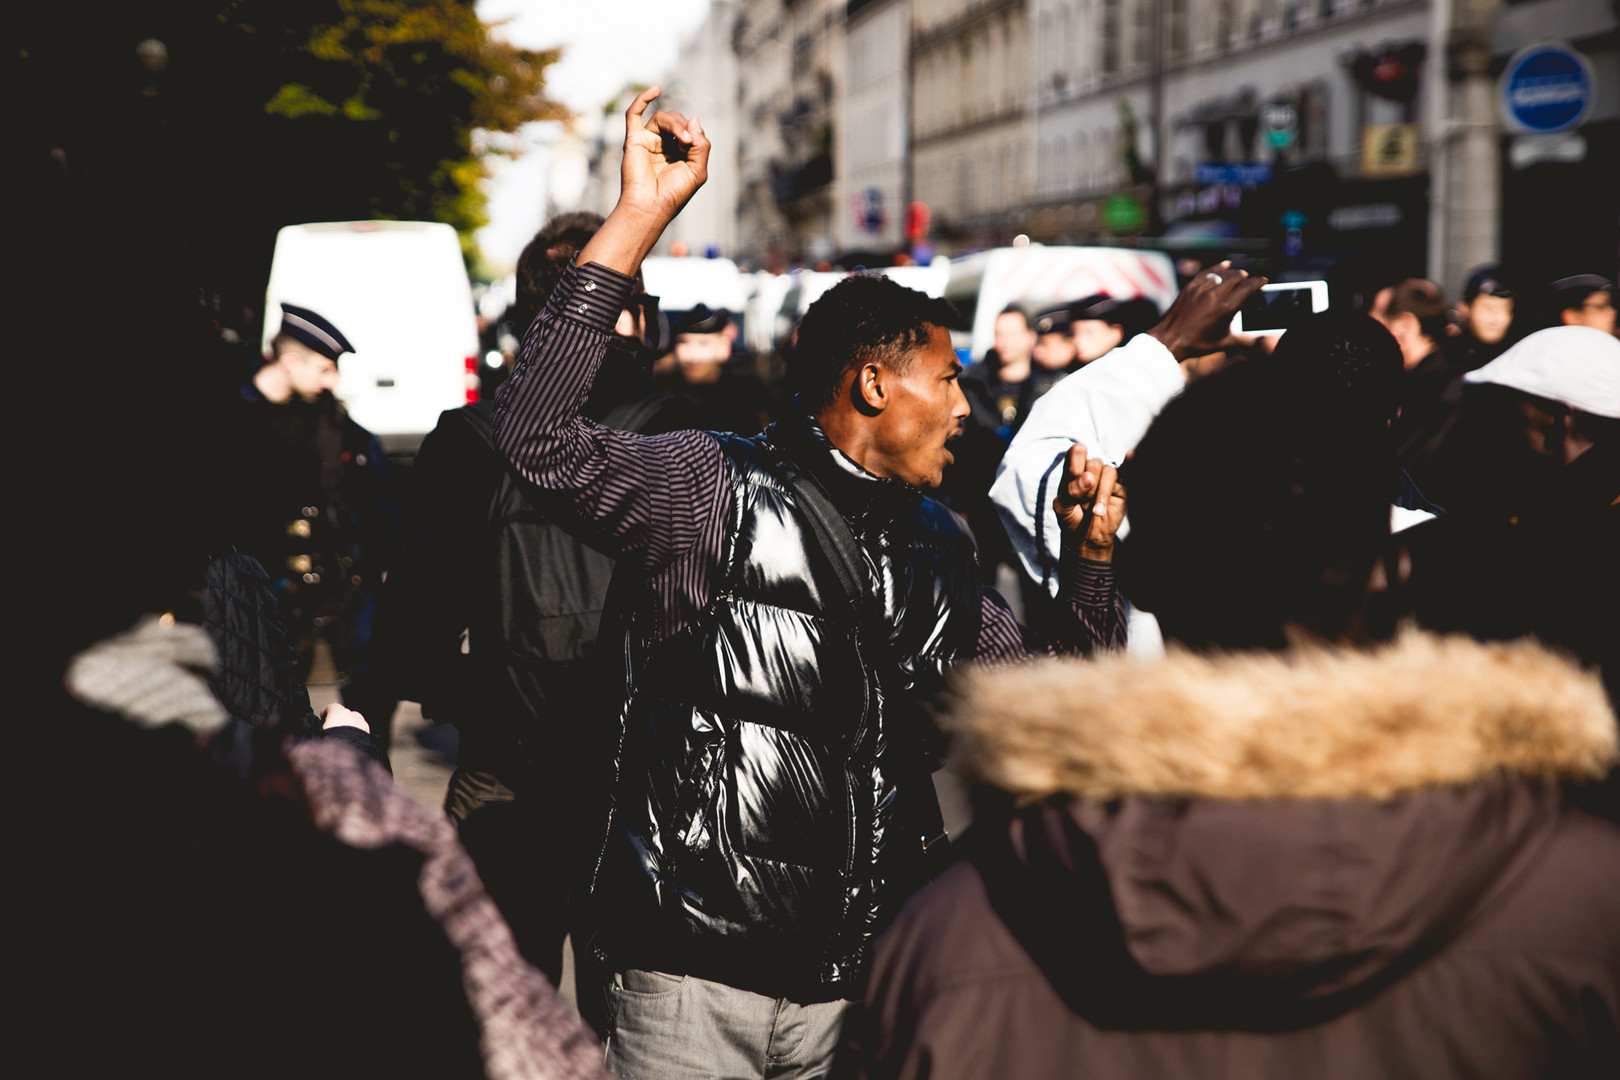 Refugees demostrating against the police. Paris, October 2016